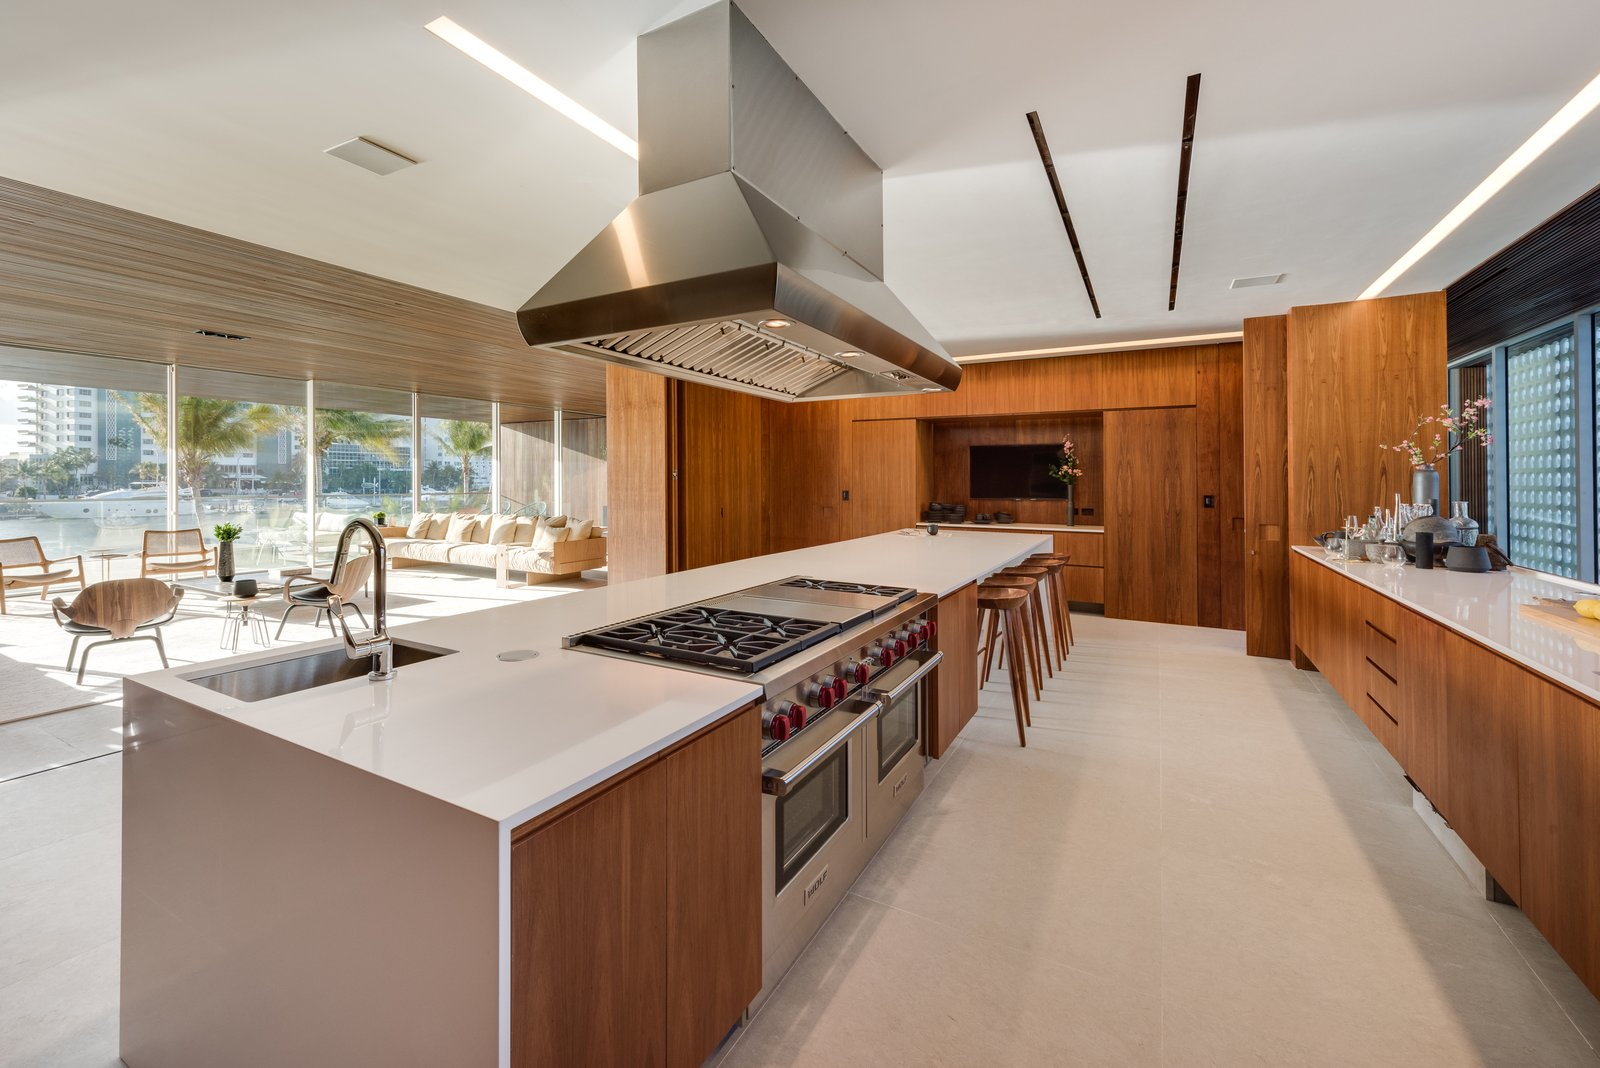 Spacious and bright, the kitchen features a large island with seating and opens up to the living area. Tagged: Trees, Gardens, Concrete, Shrubs, Chair, Sofa, Recessed, Limestone, and Kitchen.  Best Kitchen Recessed Gardens Photos from Pine Tree North